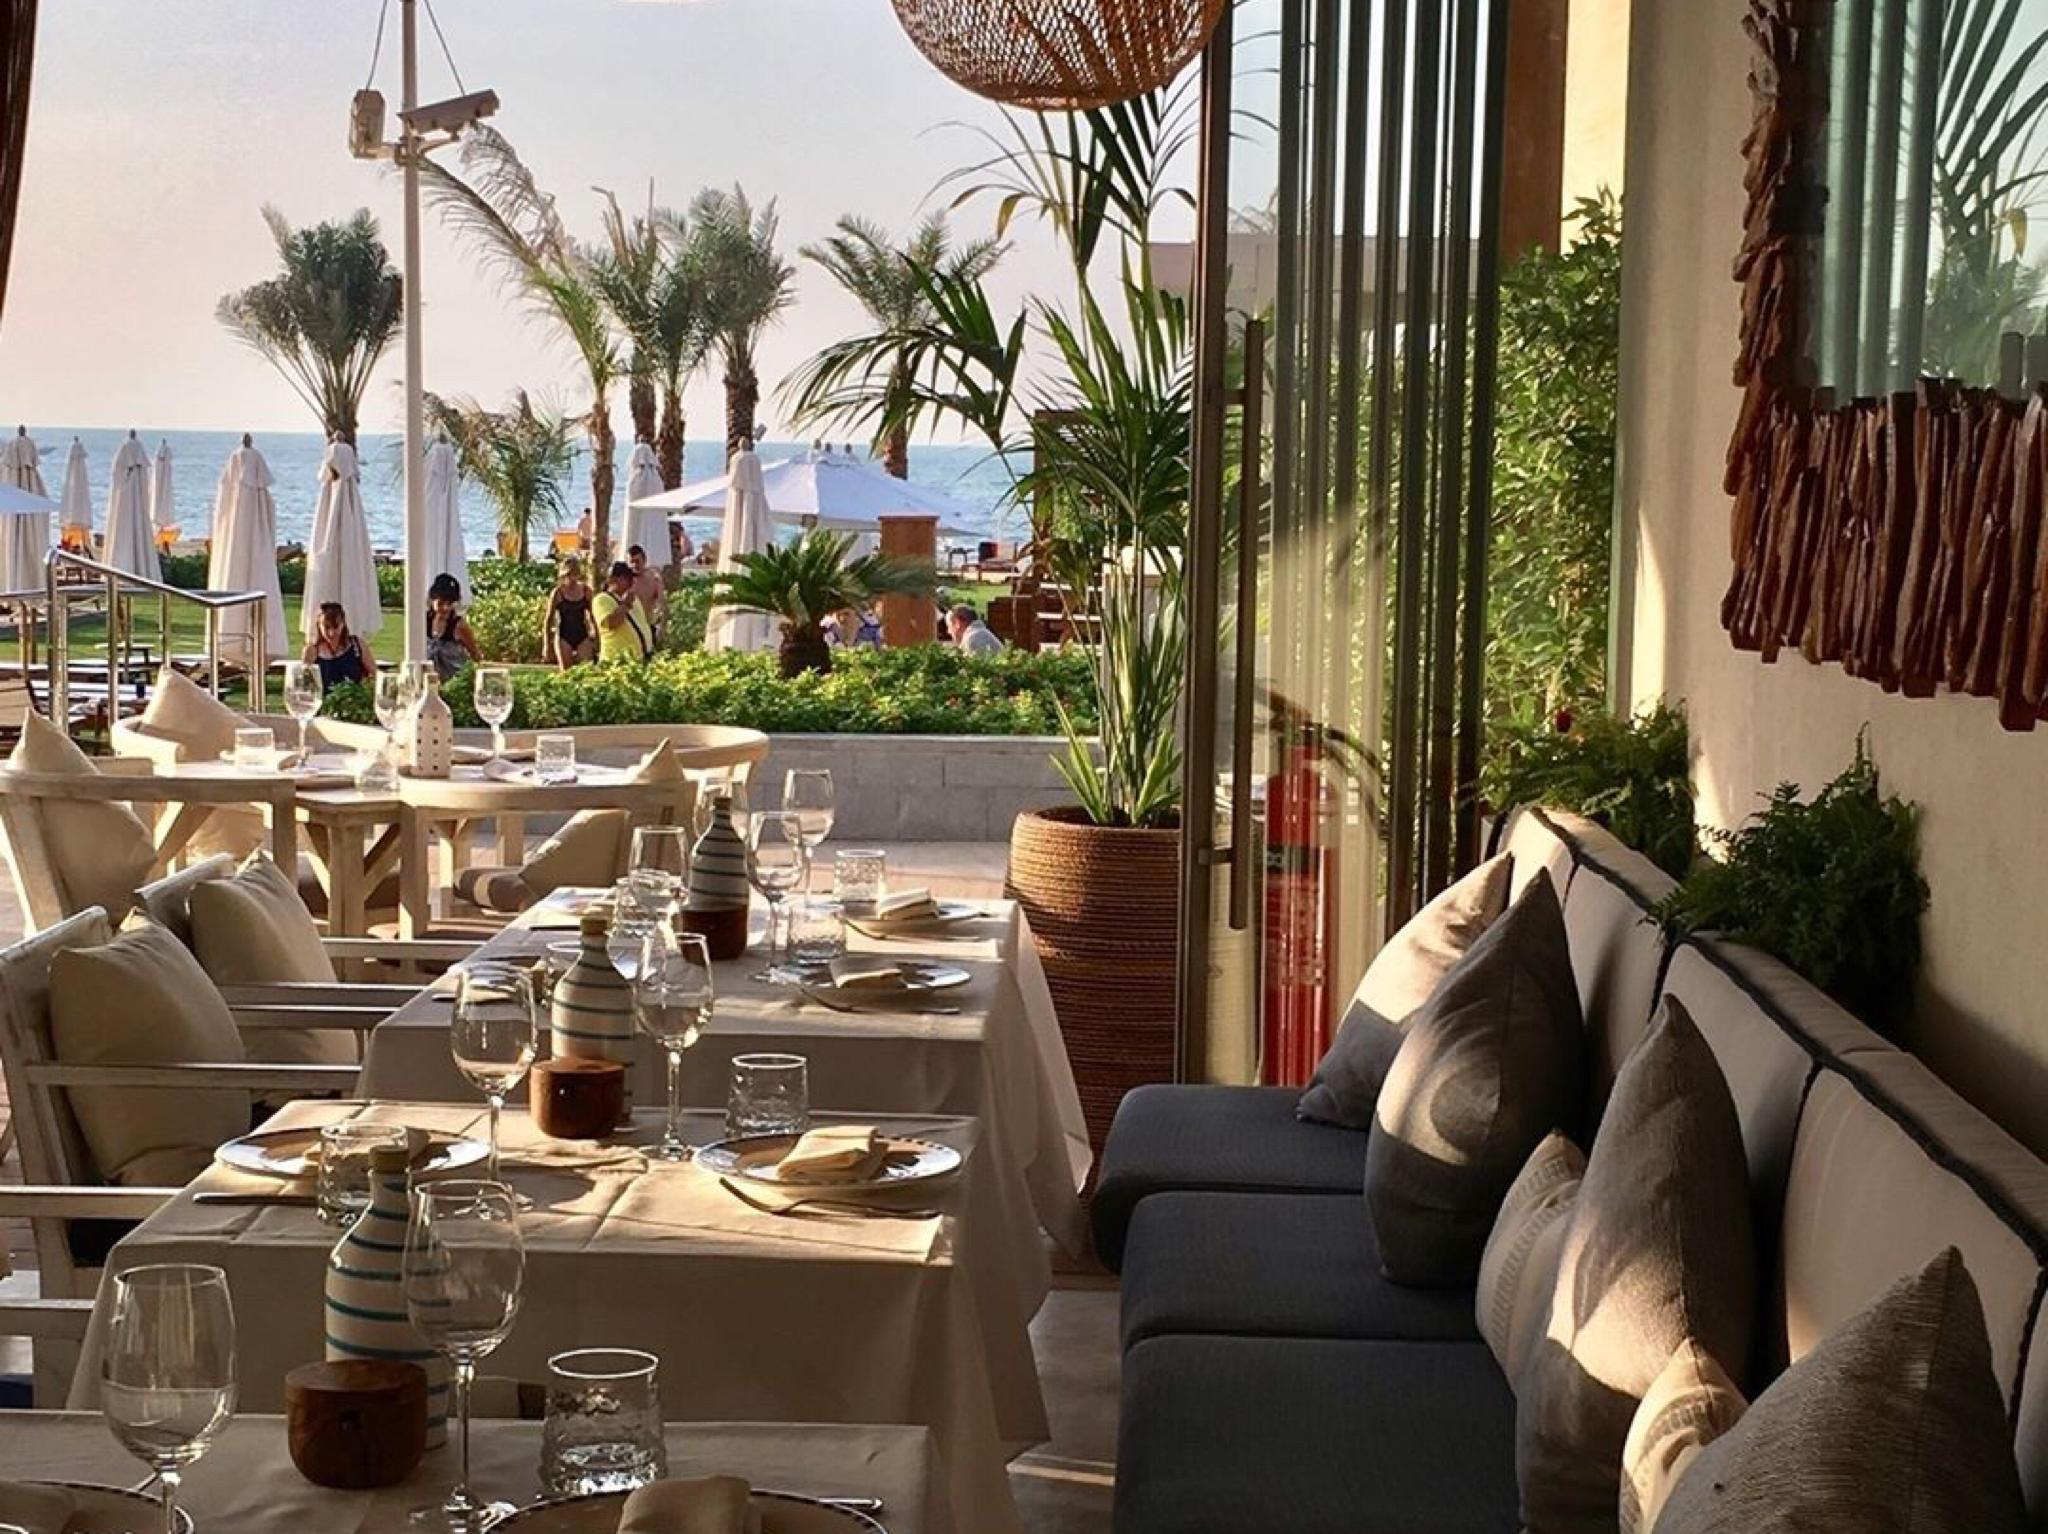 Riviera Beach Grill restaurant in Dubai